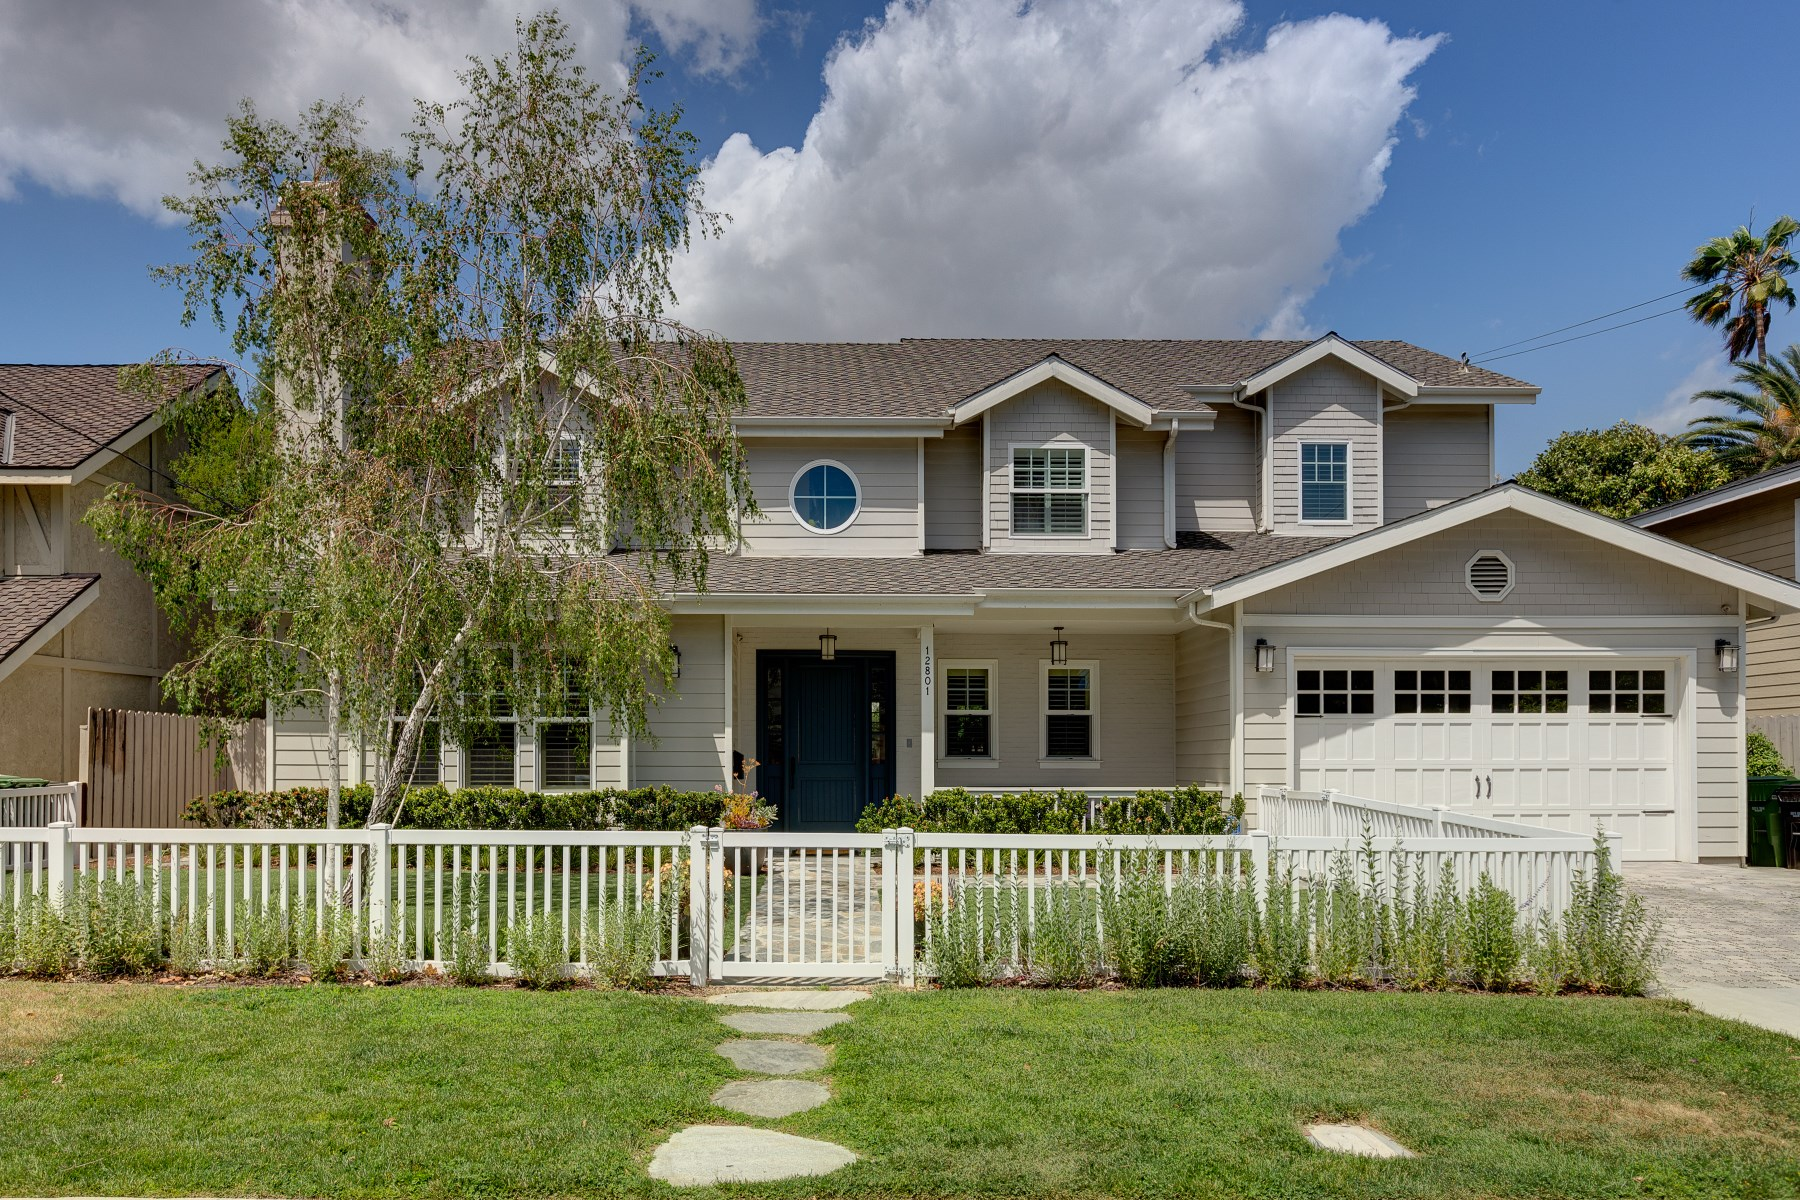 Single Family Home for Sale at 12801 Milbank Street Studio City, California, 91604 United States